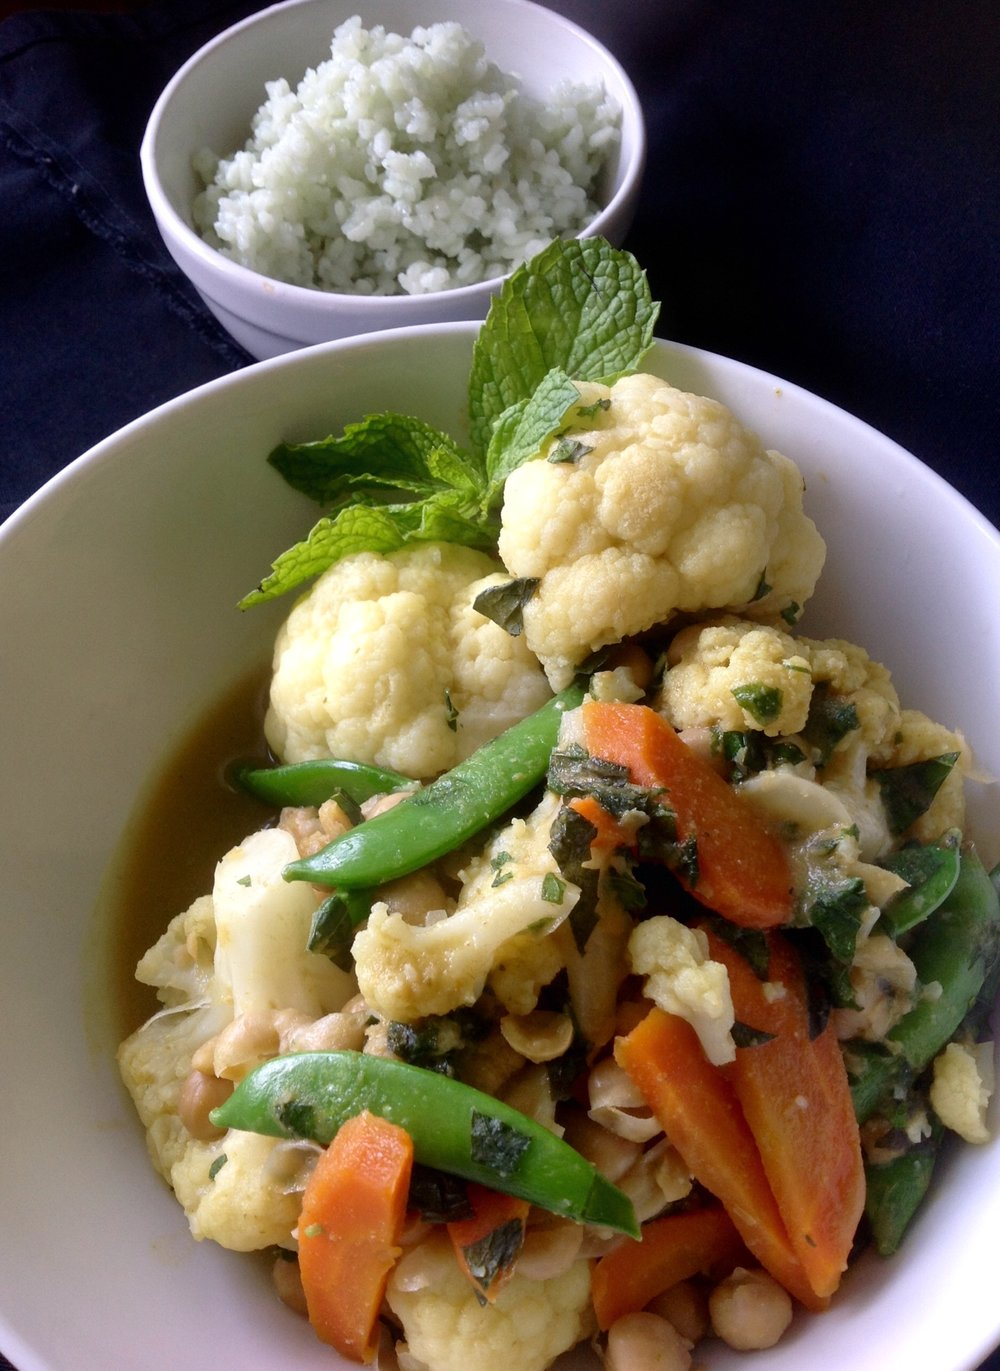 Green Thai Curry with Bamboo Rice  - Healthy, Plant-Based, Gluten-Free, Oil-Free, Vegan, Asian Stir-Fry Dinner Recipe